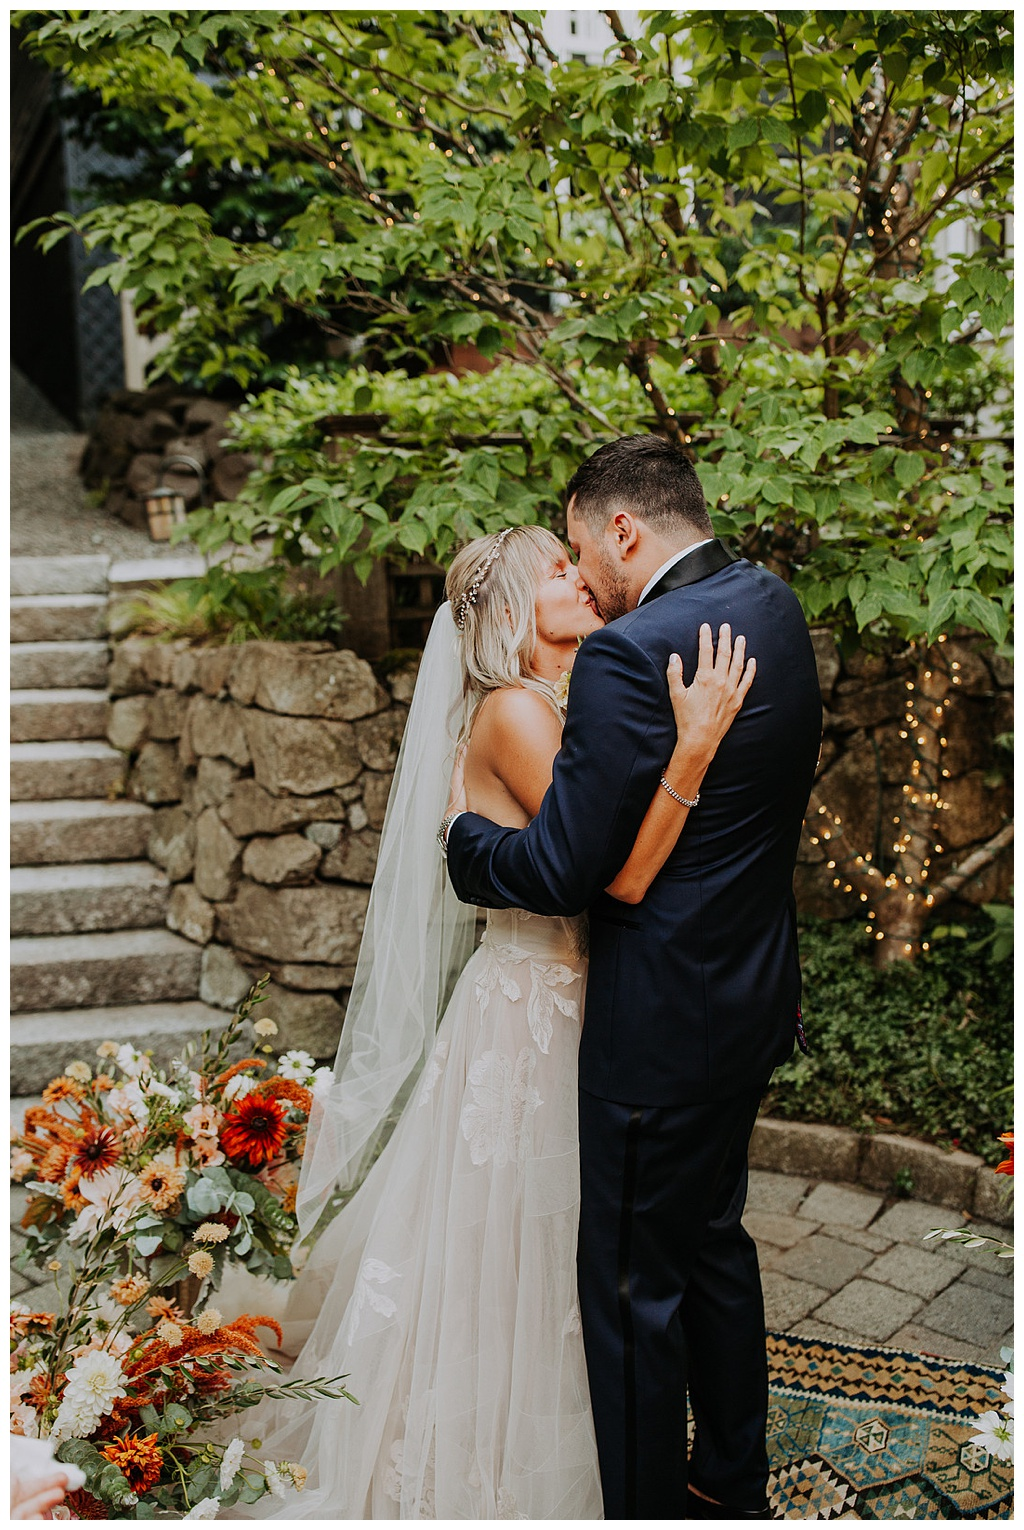 the couple embraces during the ceremony, with the boho floral arrangements in the foreground